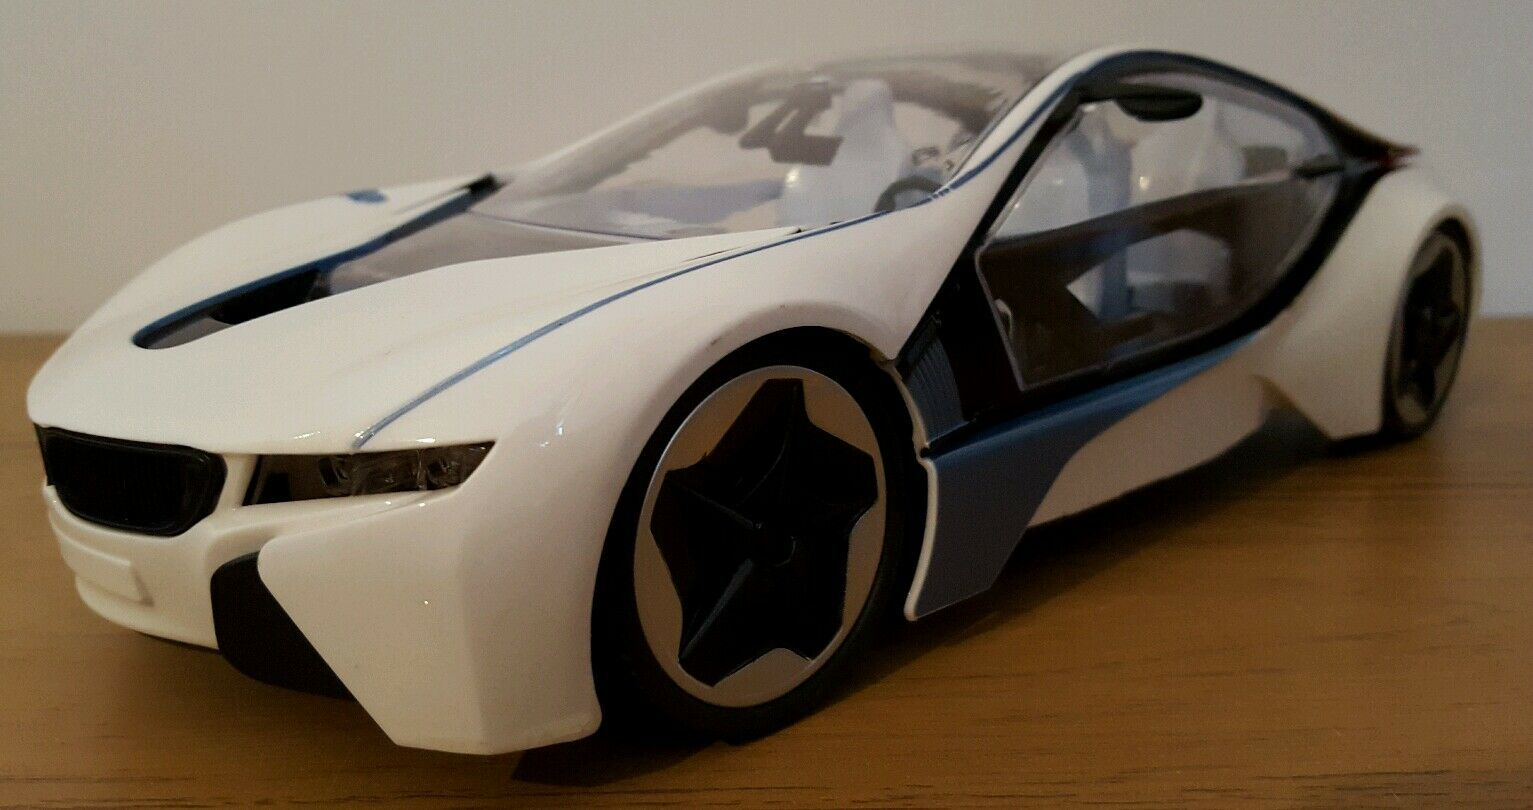 GRAND BMW i8 i8 i8 RECHARGEABLE RADIO TÉLÉCOMMANDE VOITURE 1 14 white 8f2fcd